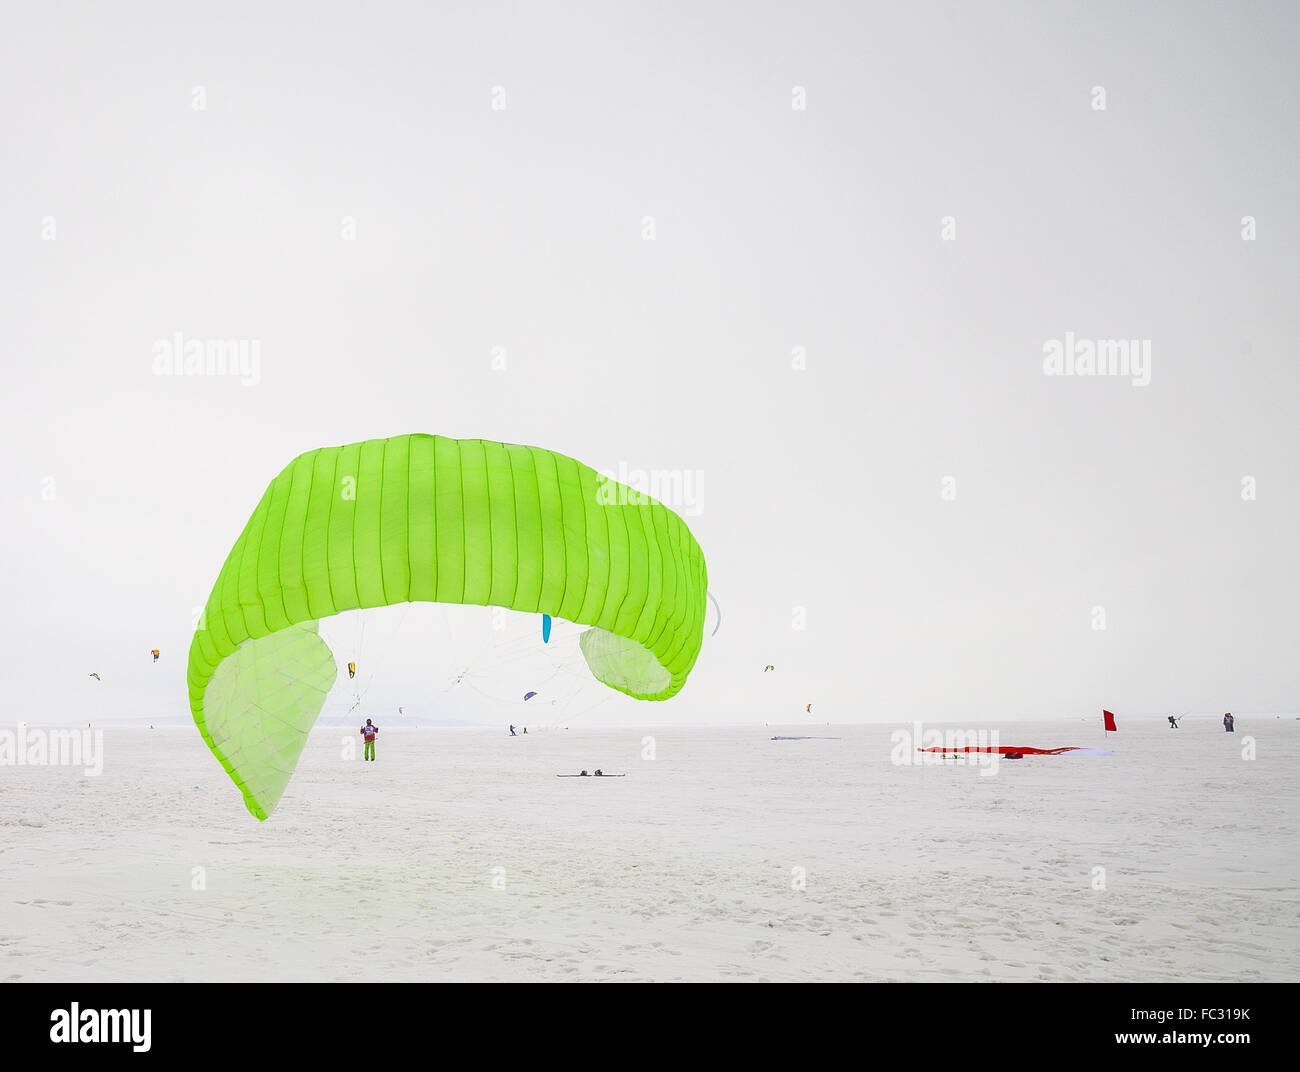 Kiteboarder with kite on the snow Stock Photo